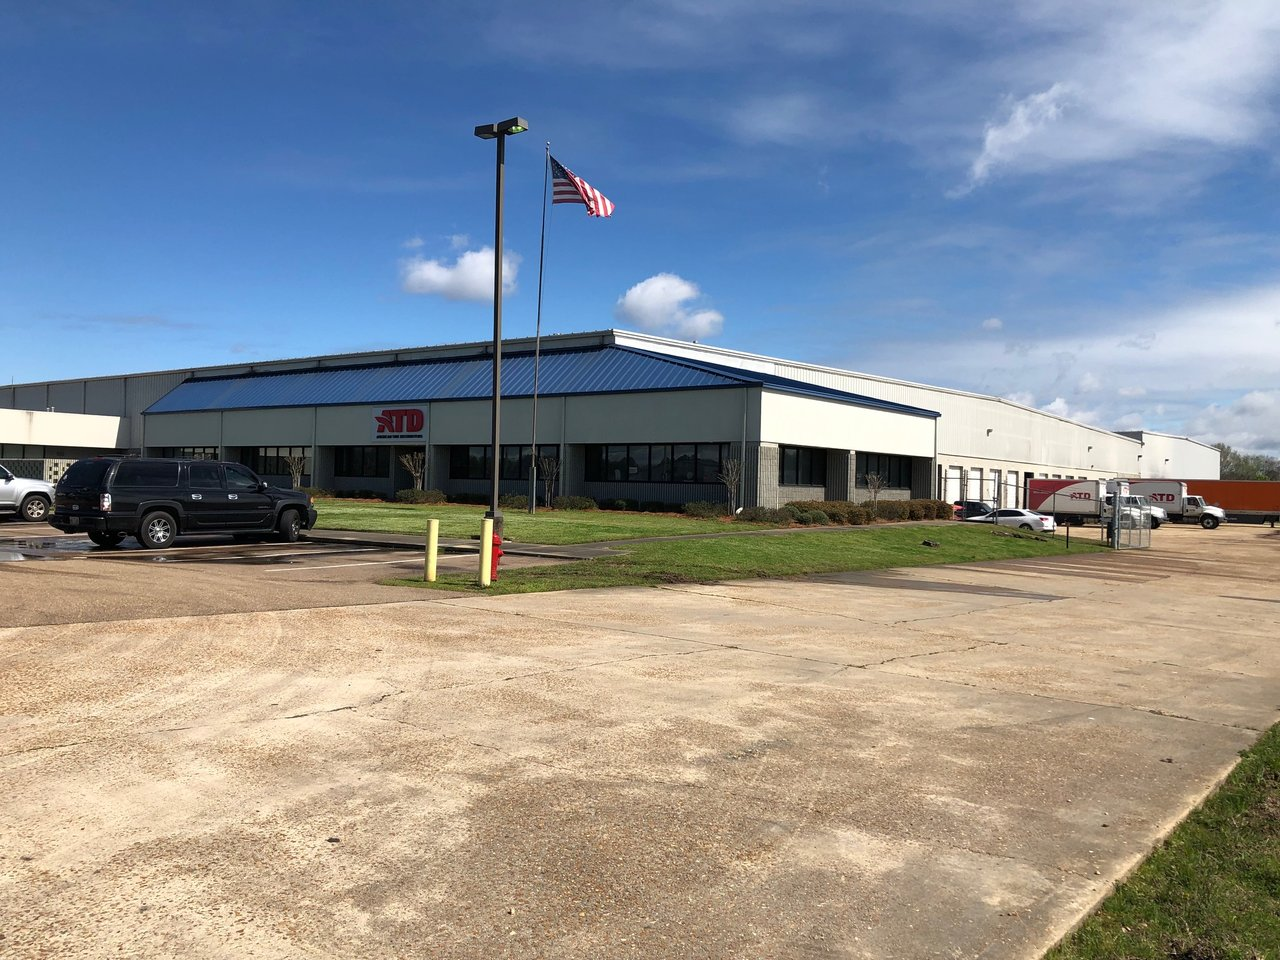 500 U.S. 49 Frontage Rd, Richland, MS, 39218